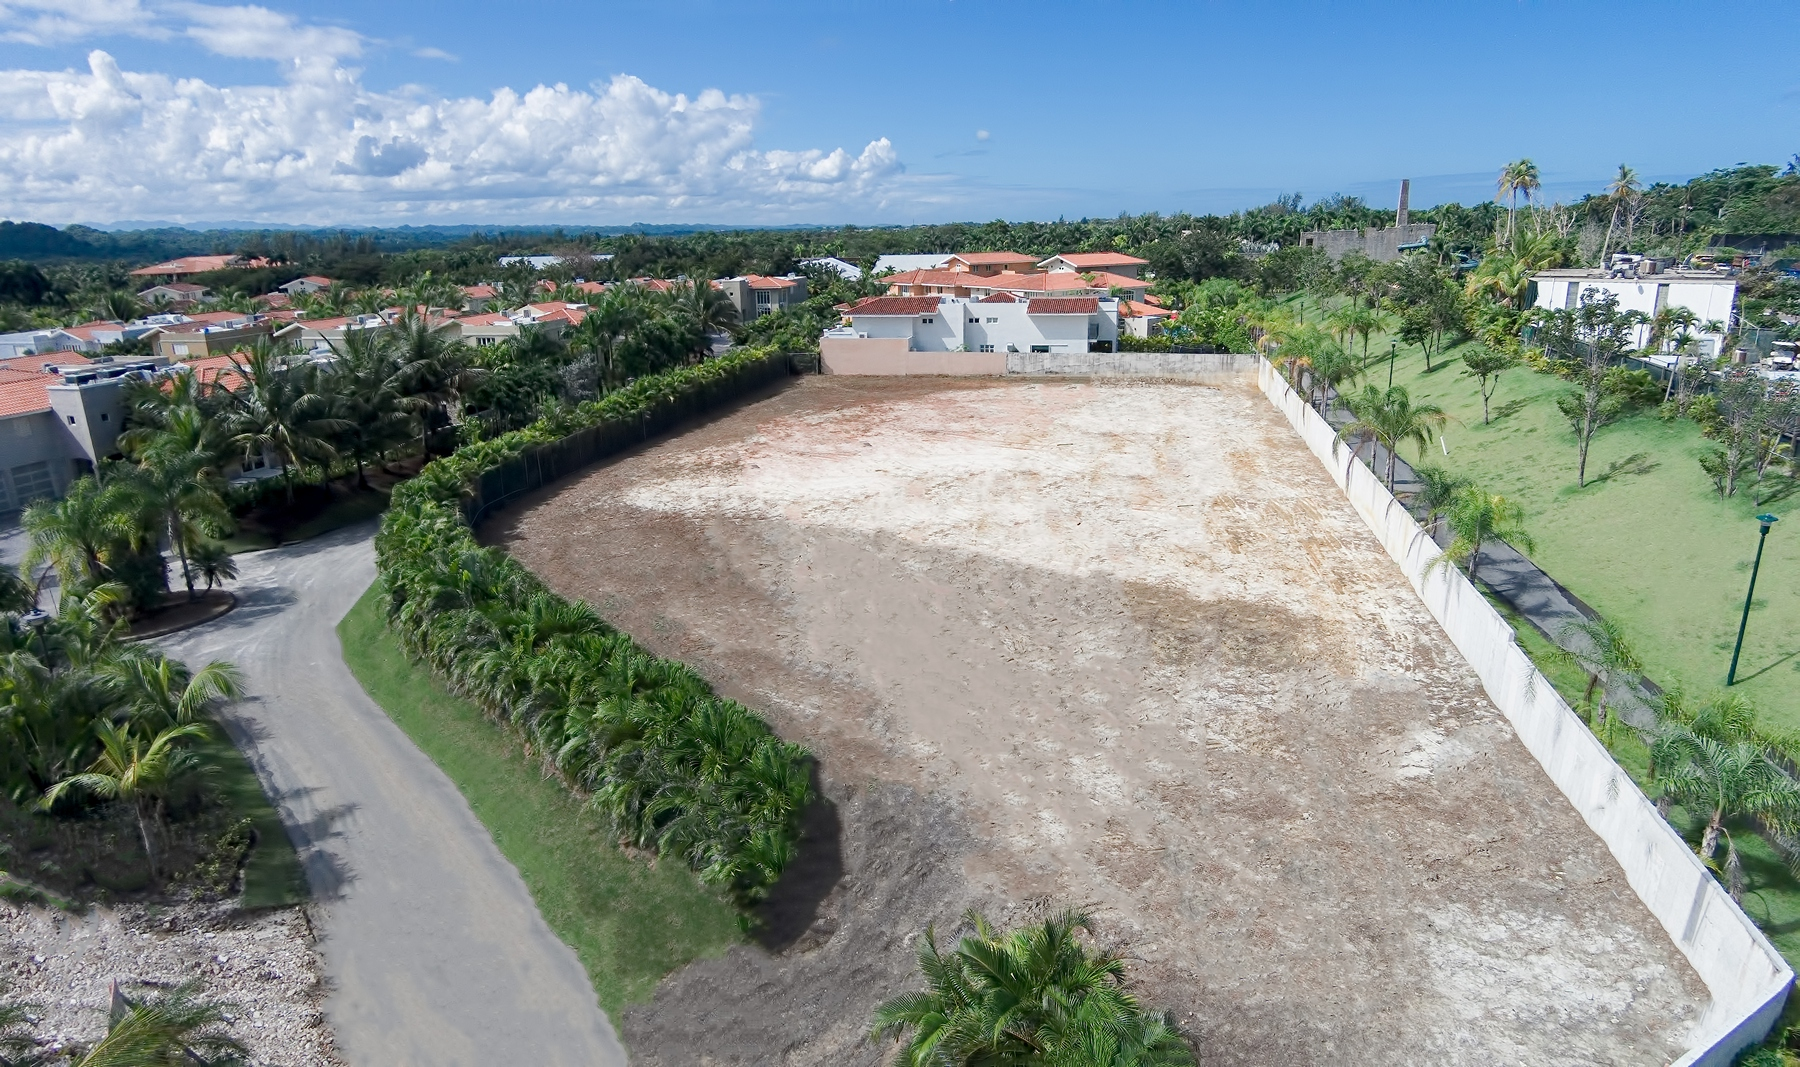 Land for Sale at Dorado Beach East Unique Lot Opportunity 323 Dorado Beach East Dorado Beach, Puerto Rico 00646 Puerto Rico